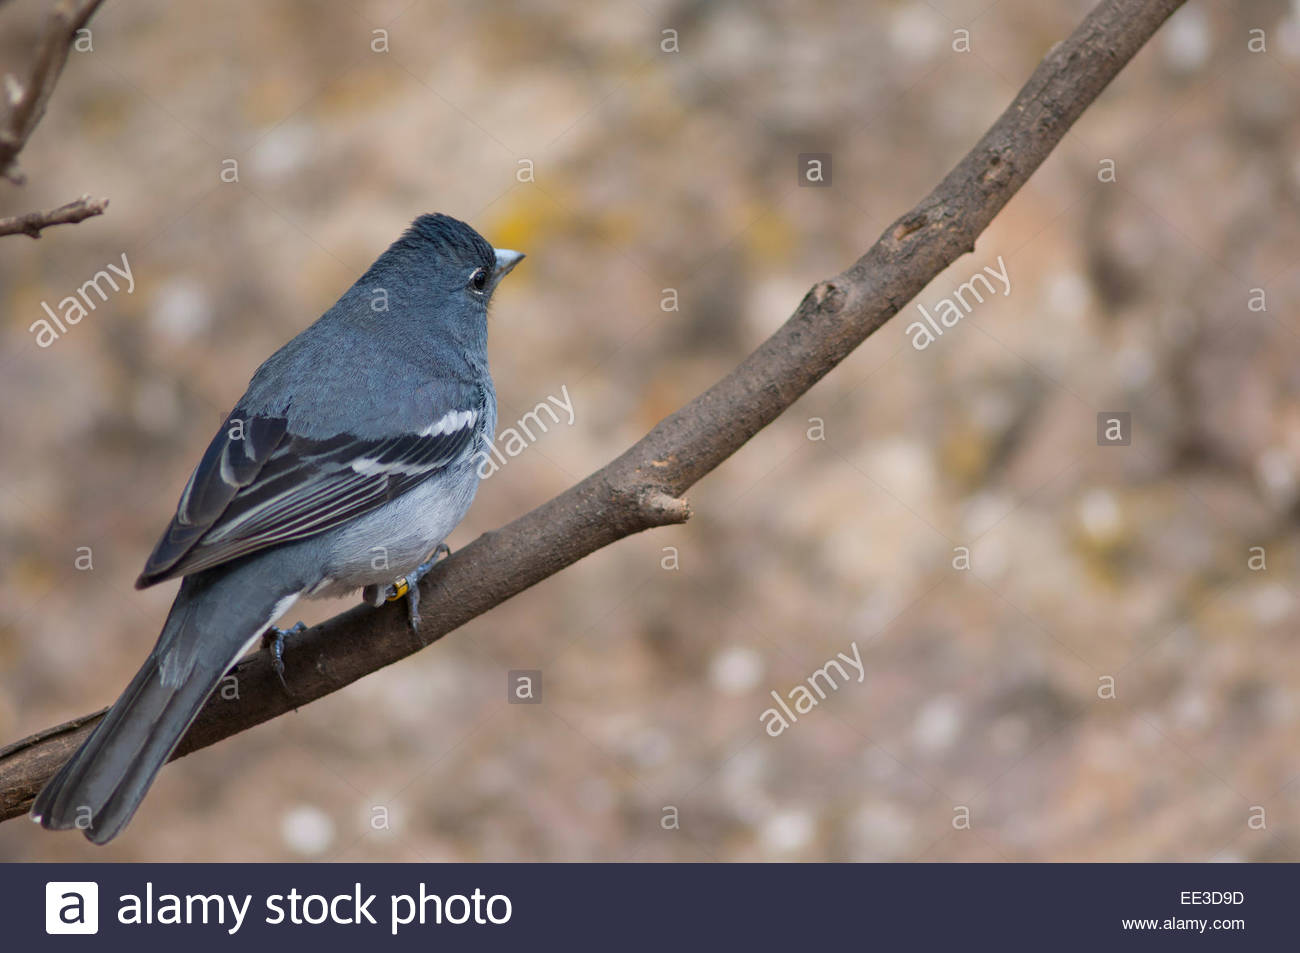 Gran Canaria blue chaffinch (Fringilla teydea polatzeki) sitting on a branch. Adult male. Stock Photo